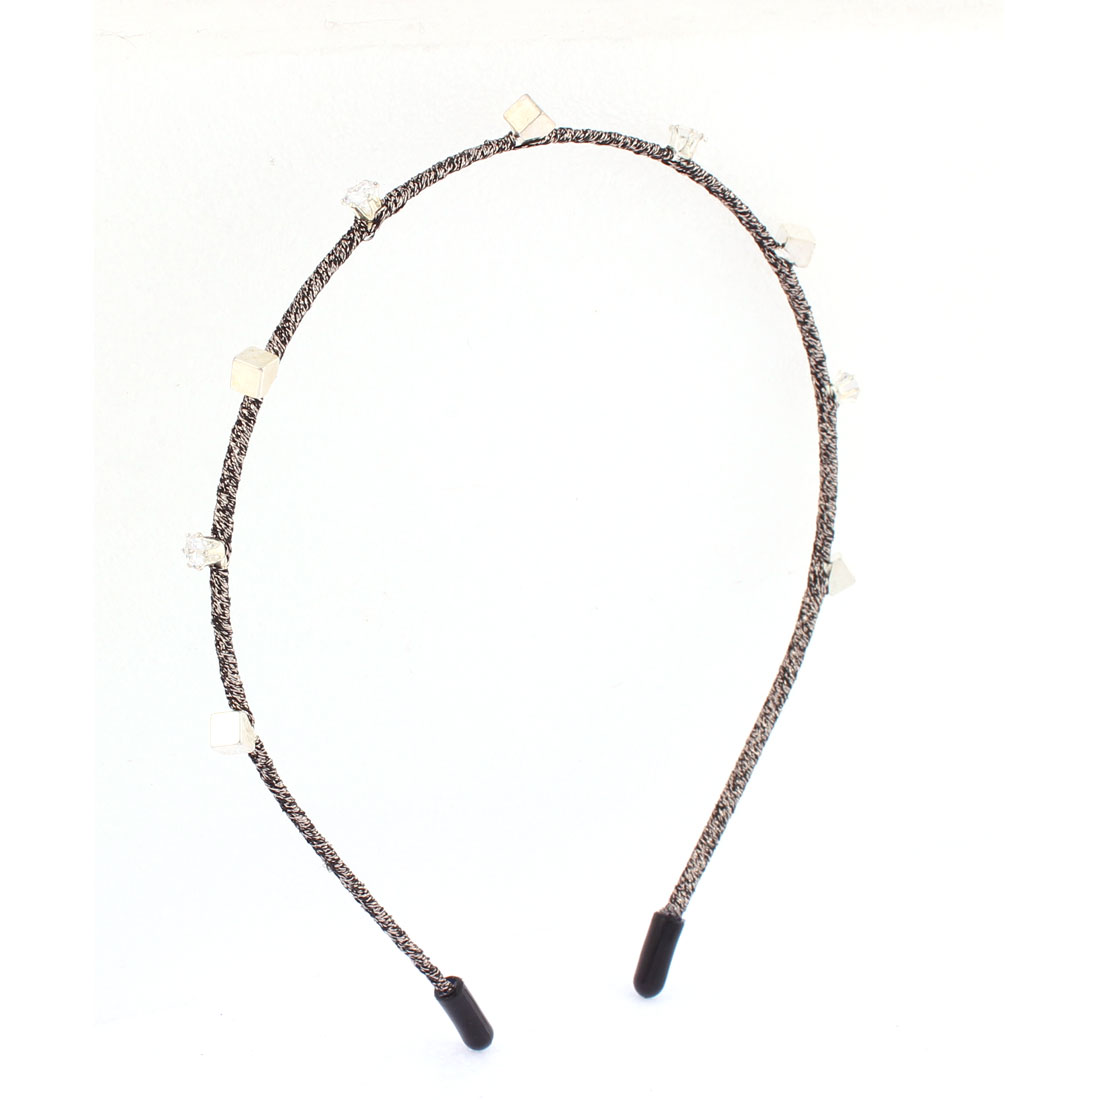 Rhinestone Inlaid Knitted String Hair Hoop Headband Hairband for Lady